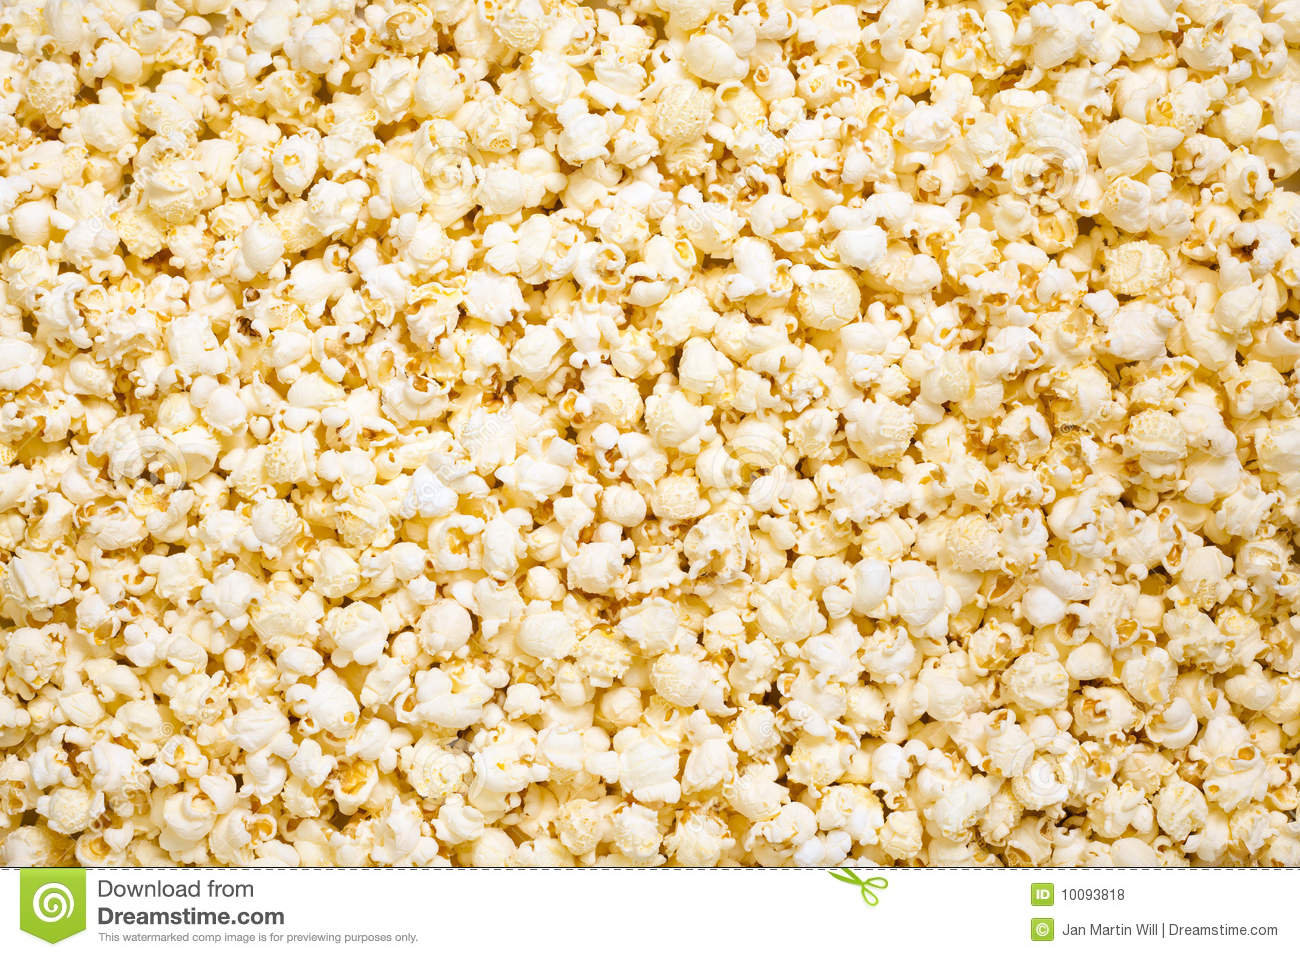 Freshly cooked, hot popcorn, suitable for an abstract background.